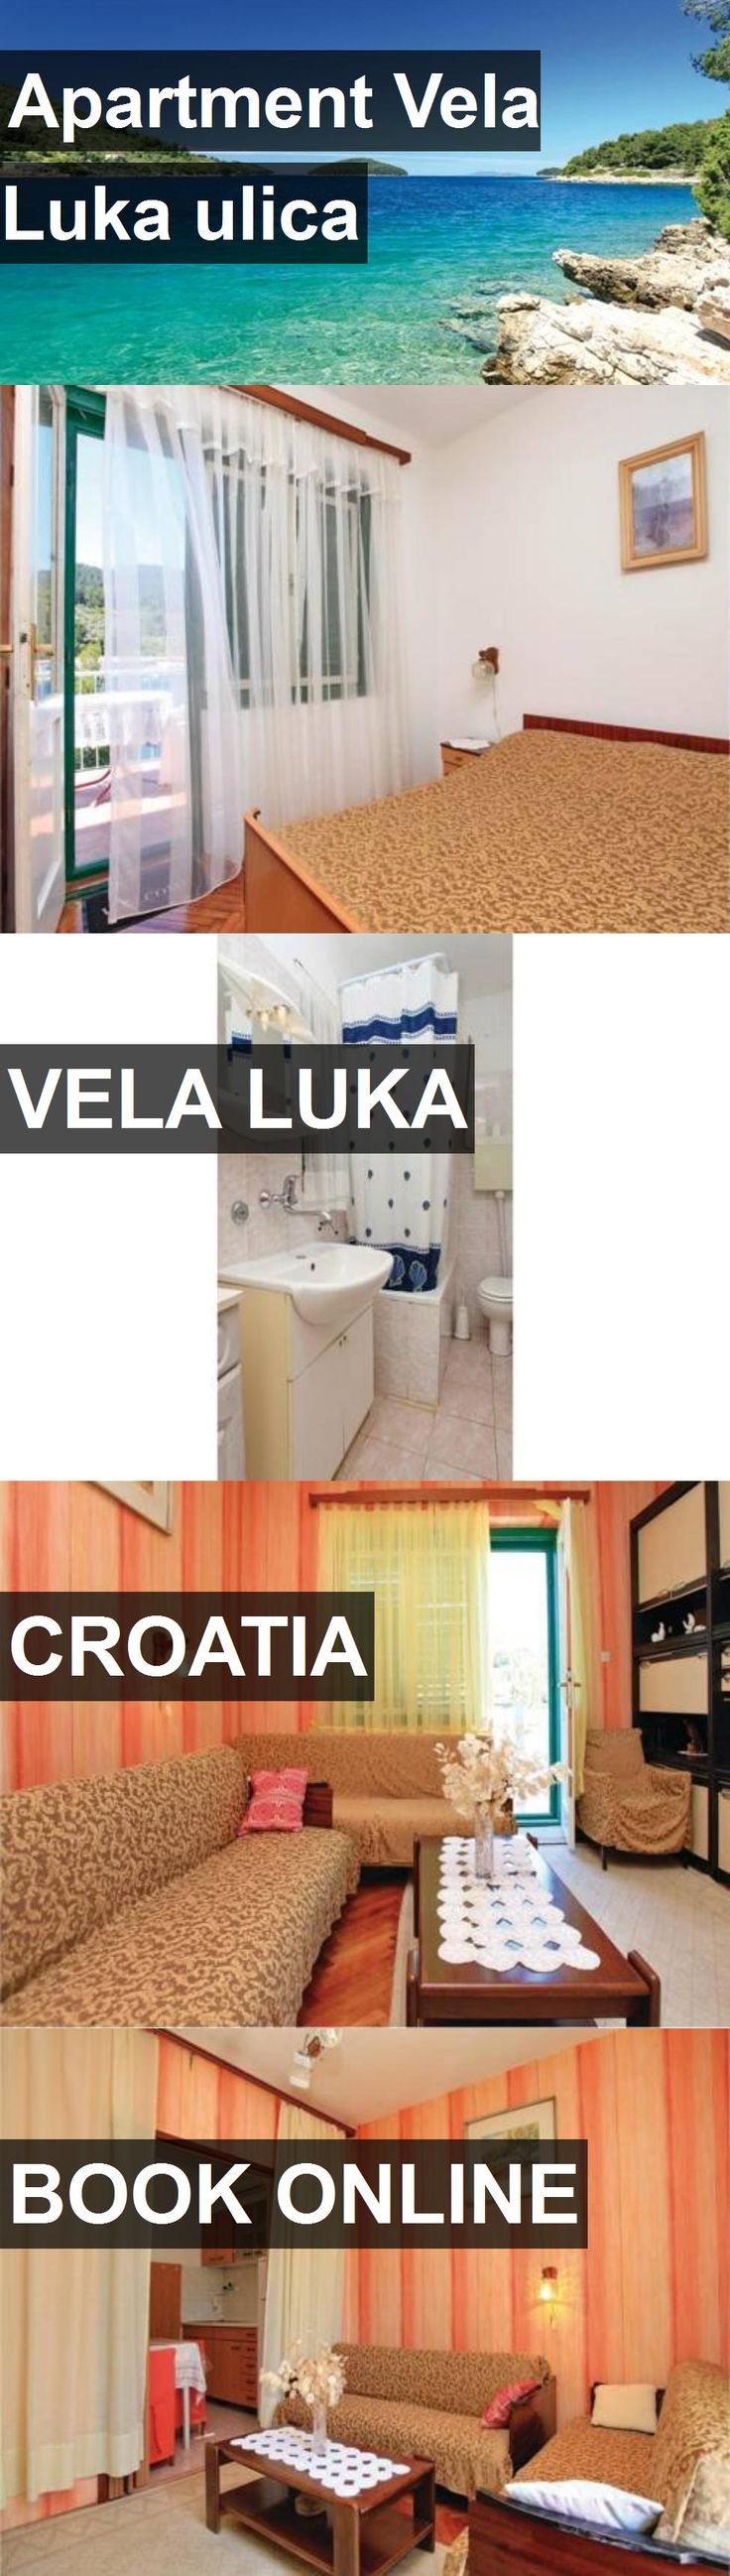 Hotel Apartment Vela Luka ulica in Vela Luka, Croatia. For more information, photos, reviews and best prices please follow the link. #Croatia #VelaLuka #ApartmentVelaLukaulica #hotel #travel #vacation